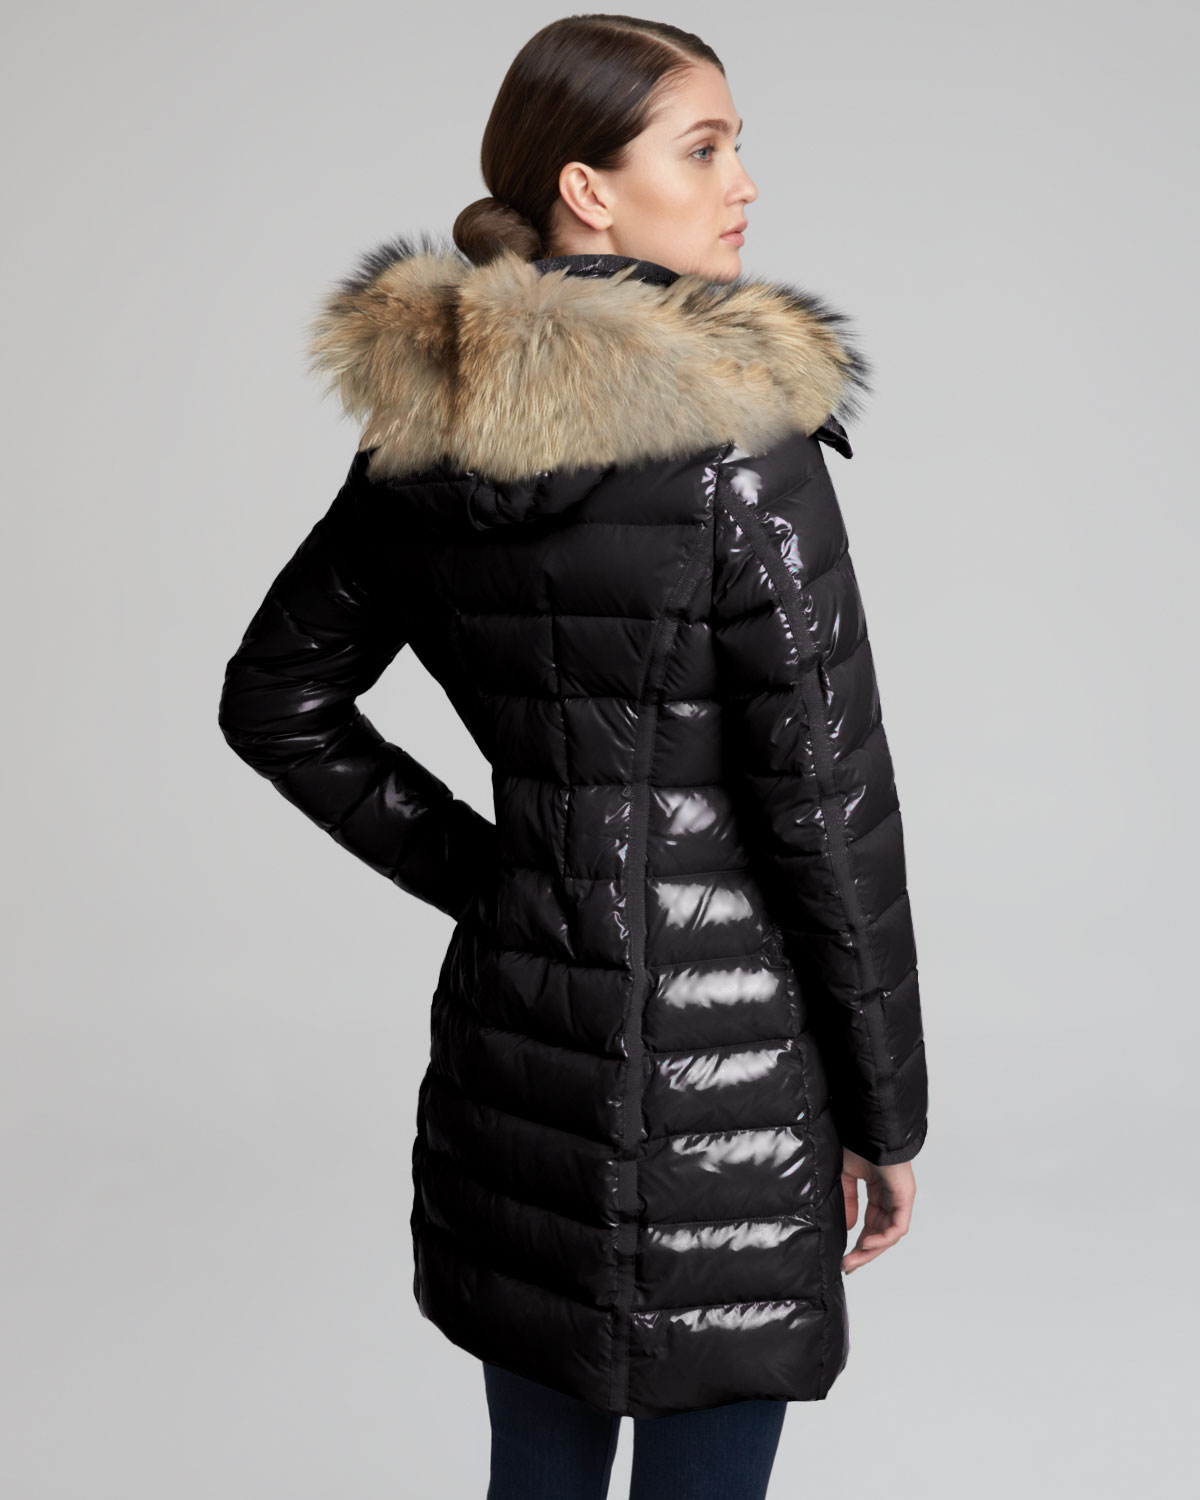 Long Puffer Coat: Looking Smart and Beautiful